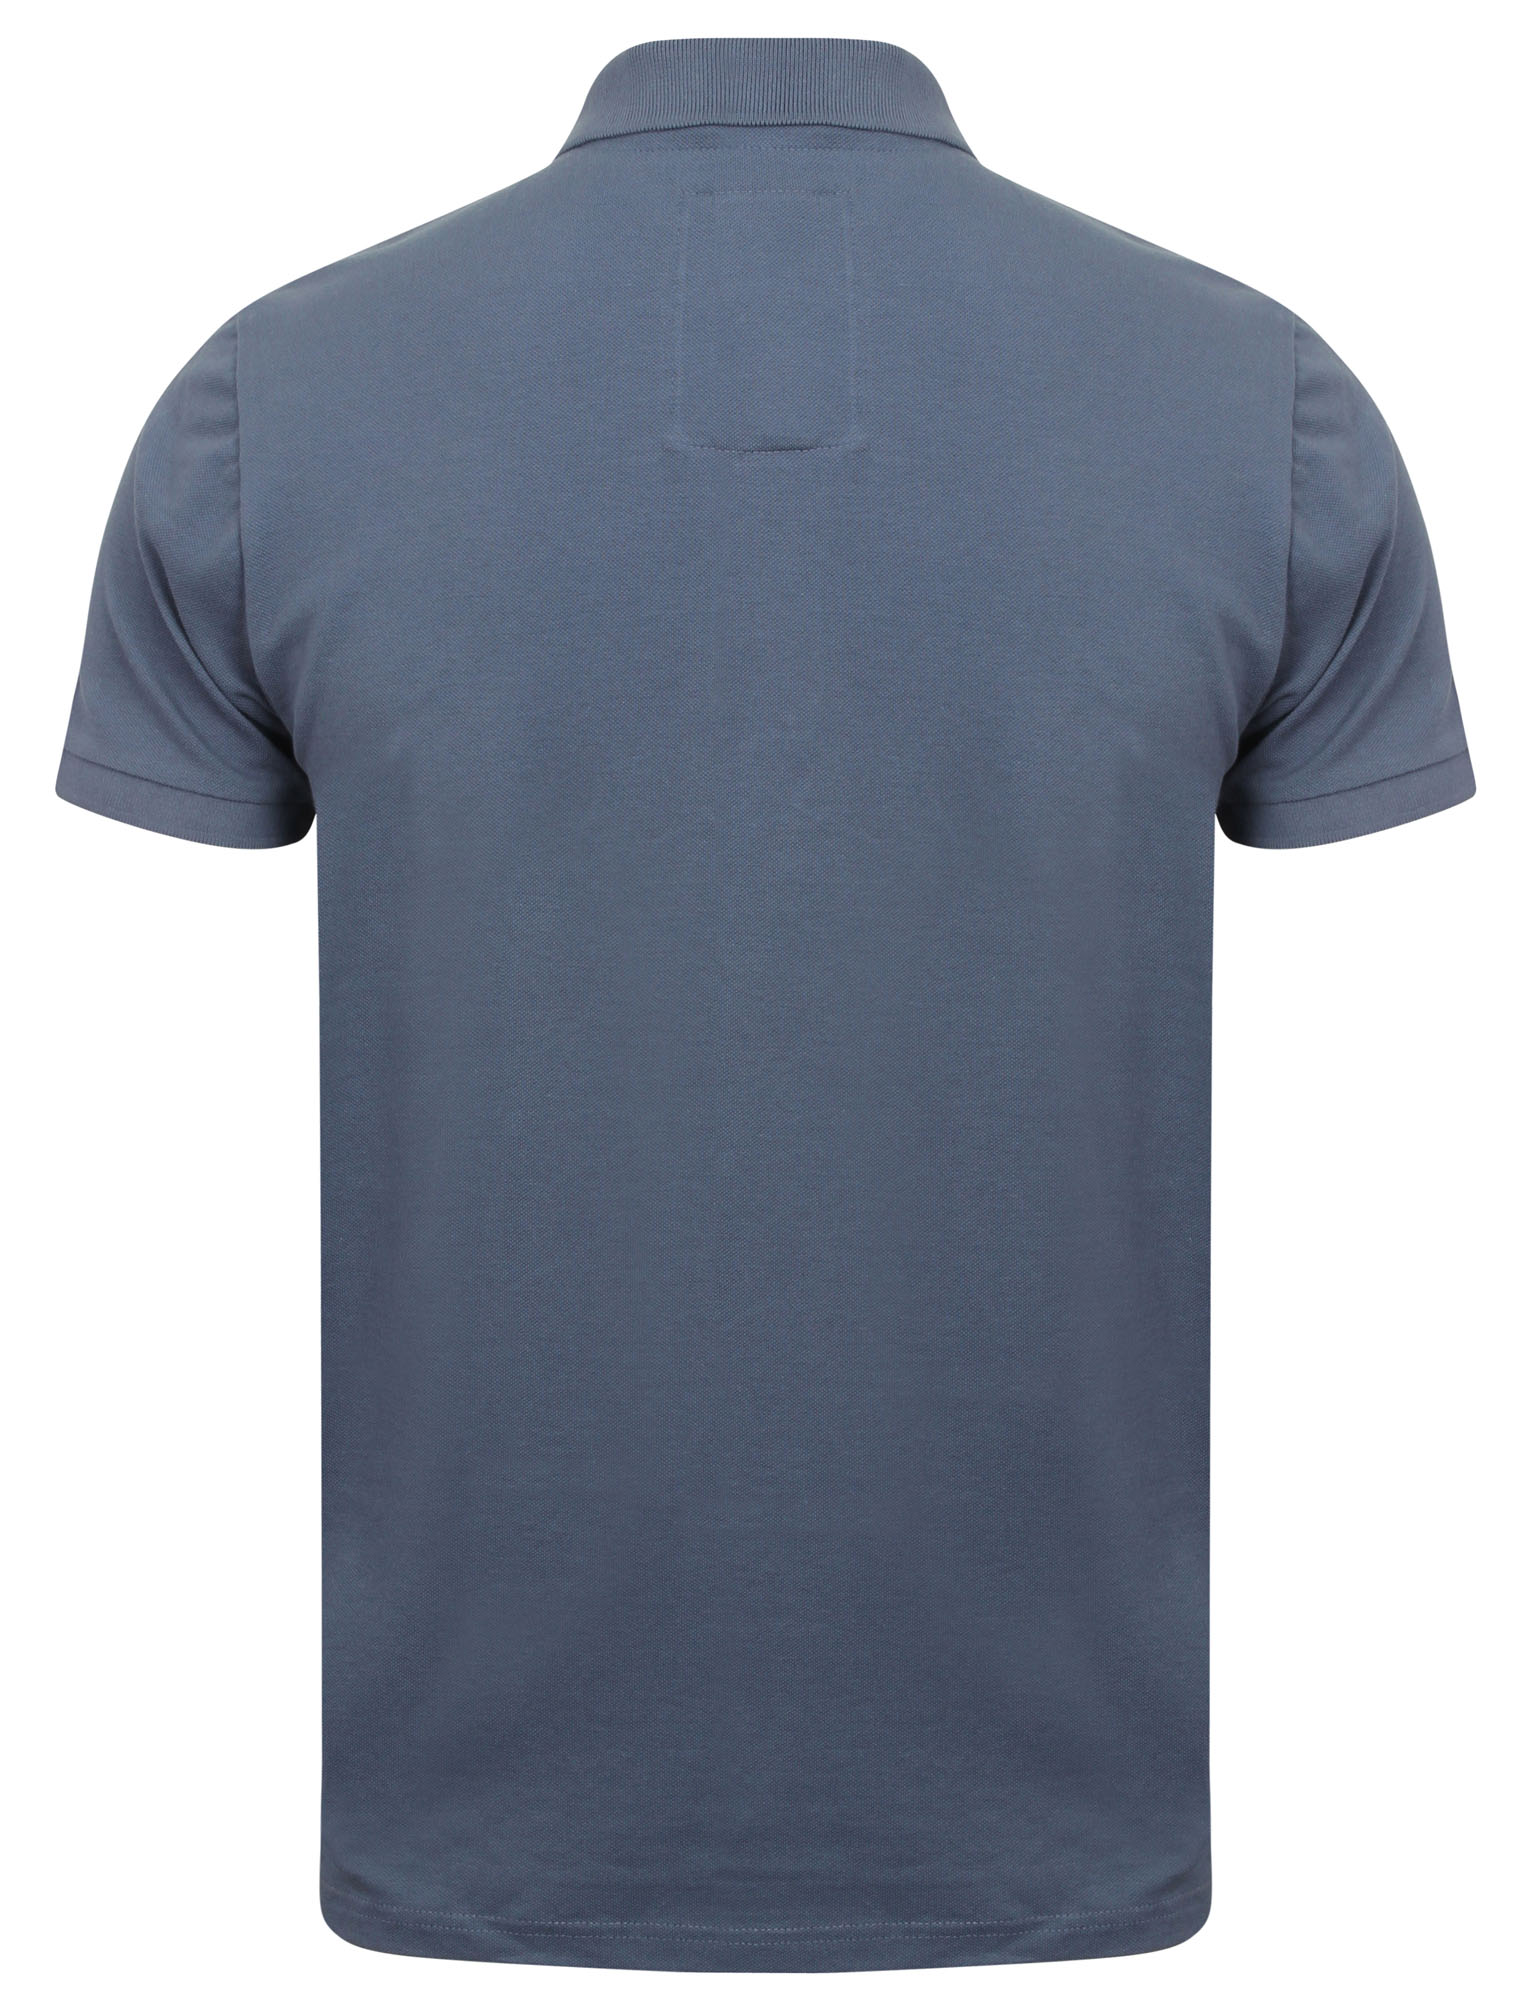 Mens-Tokyo-Laundry-Cotton-Classic-Casual-Short-Sleeve-Polo-Shirt-Top-Size-S-XXL thumbnail 30